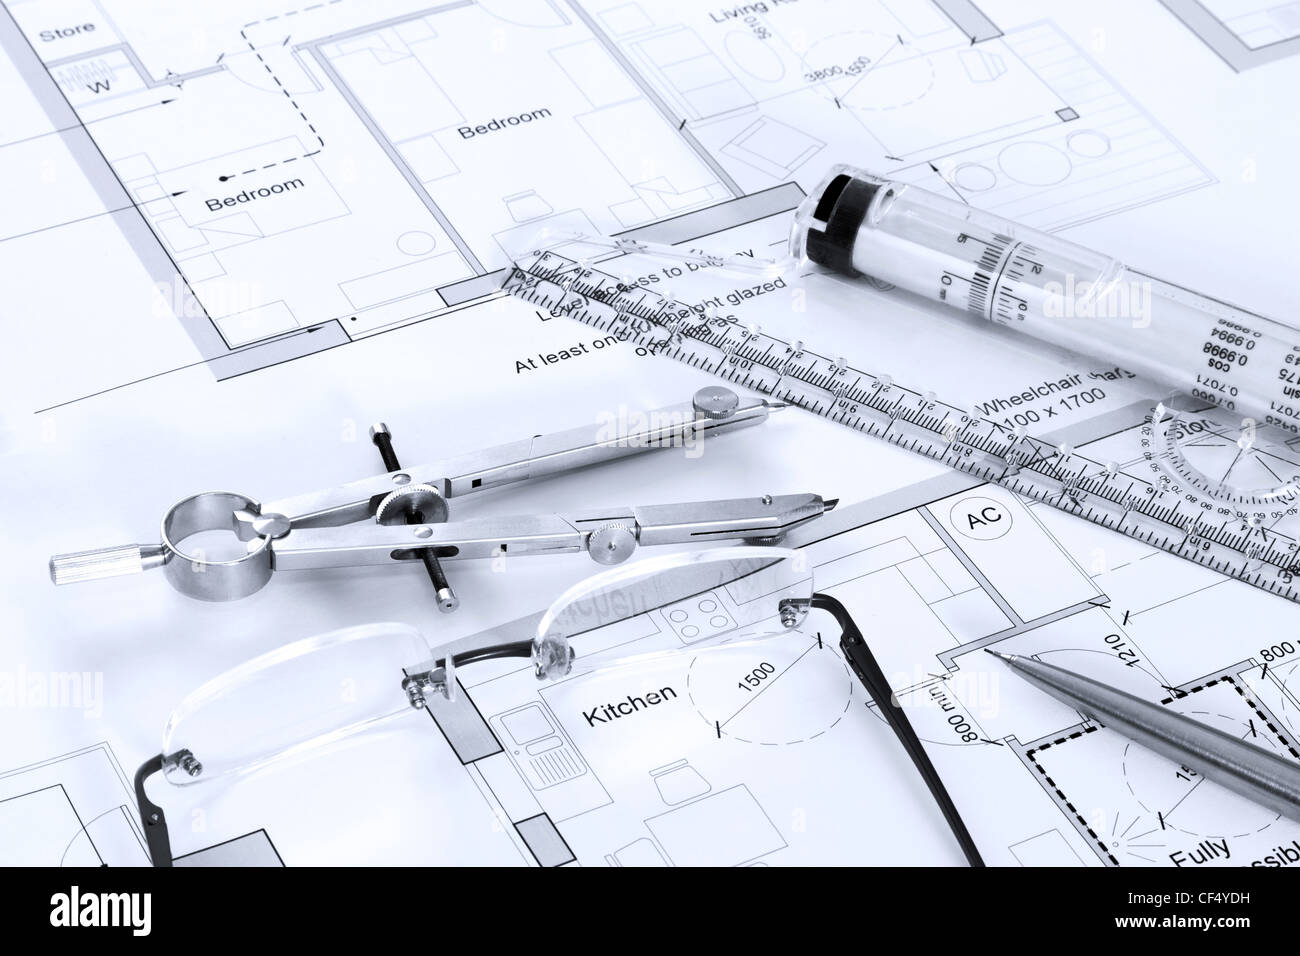 Architectural building plans blueprint stock photos architectural still life photo of architectural floor plans with drawing instruments stock image malvernweather Gallery